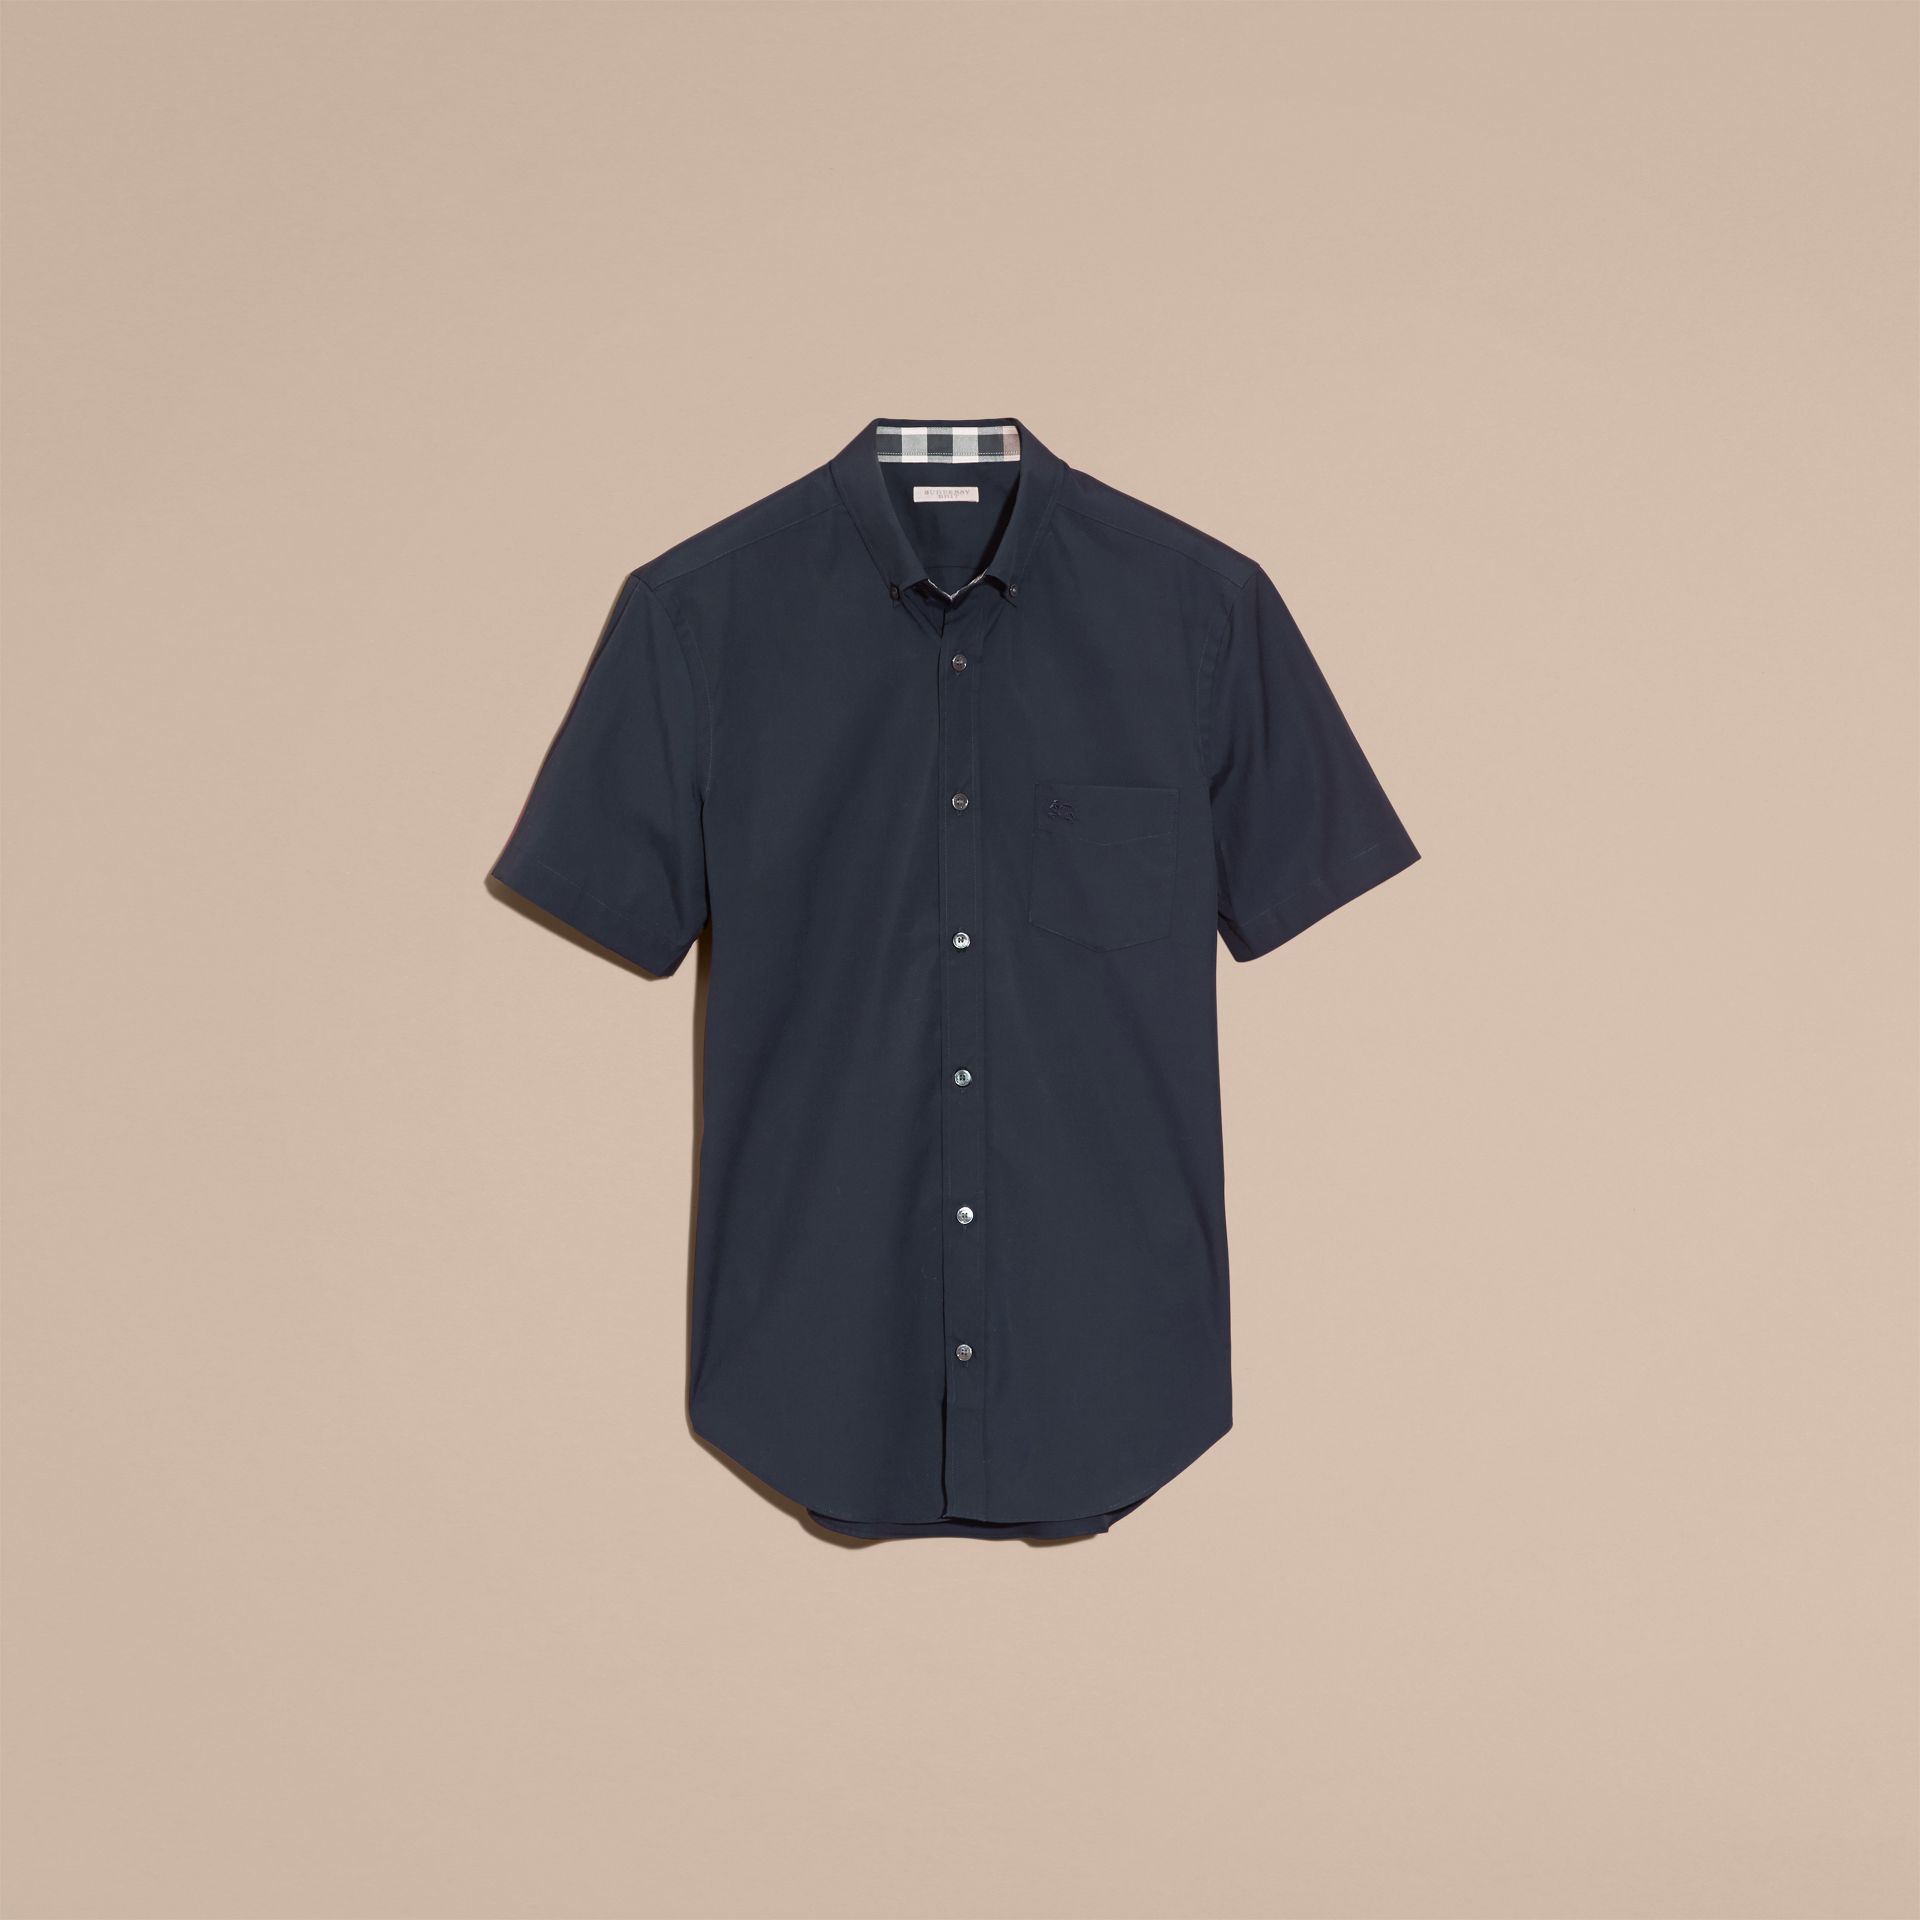 Navy Short-sleeved Stretch Cotton Poplin Shirt Navy - gallery image 4